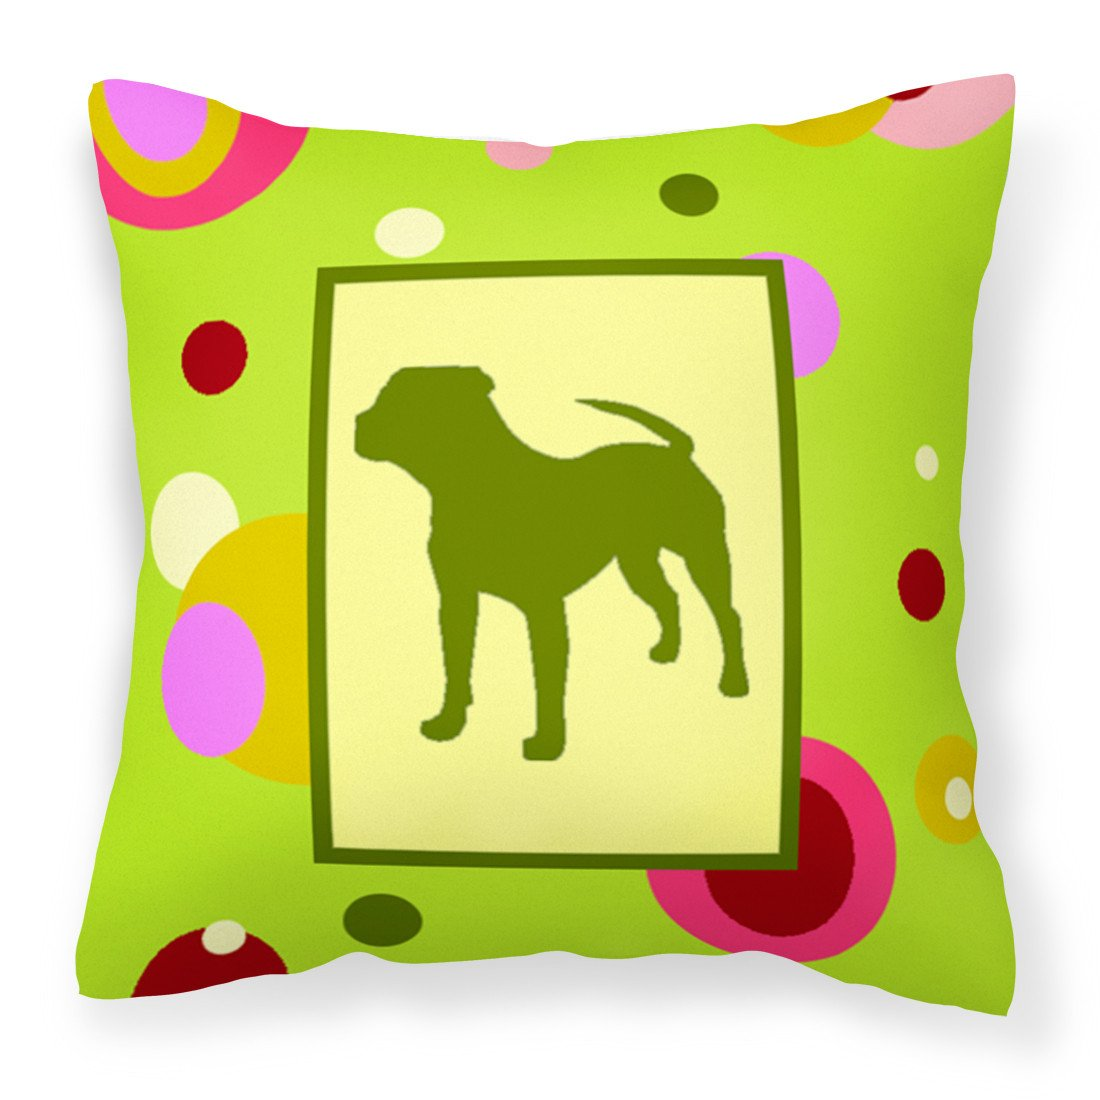 Lime Green Dots Pit Bull Fabric Decorative Pillow CK1153PW1414 by Caroline's Treasures